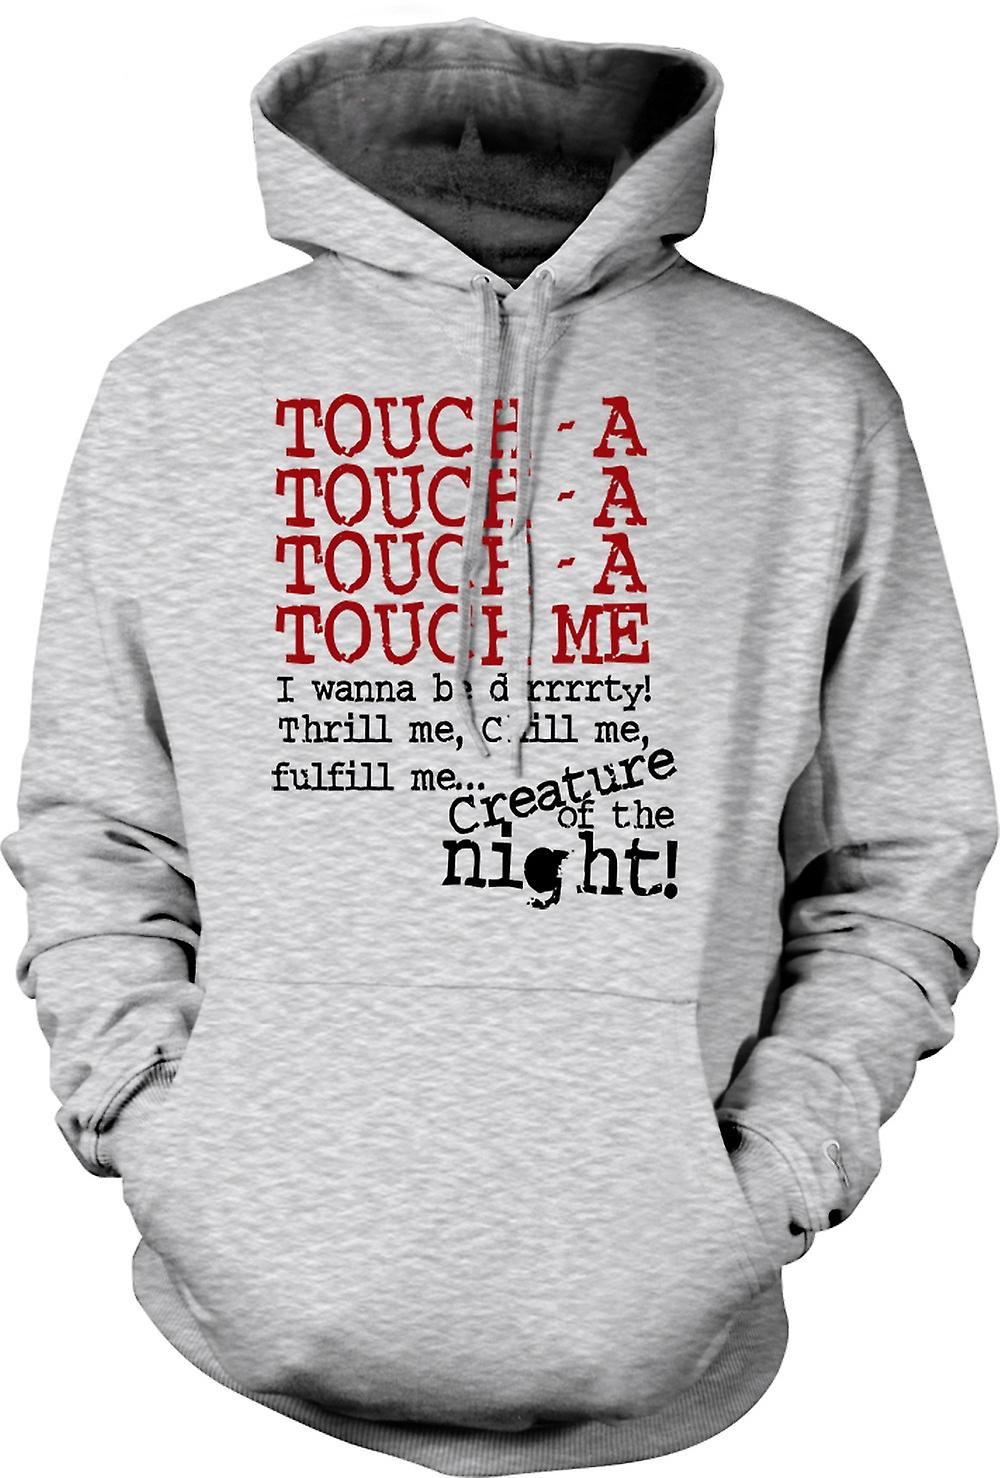 Mens Hoodie - Touch - A Touch - A Touch - A Me - drôle de citation